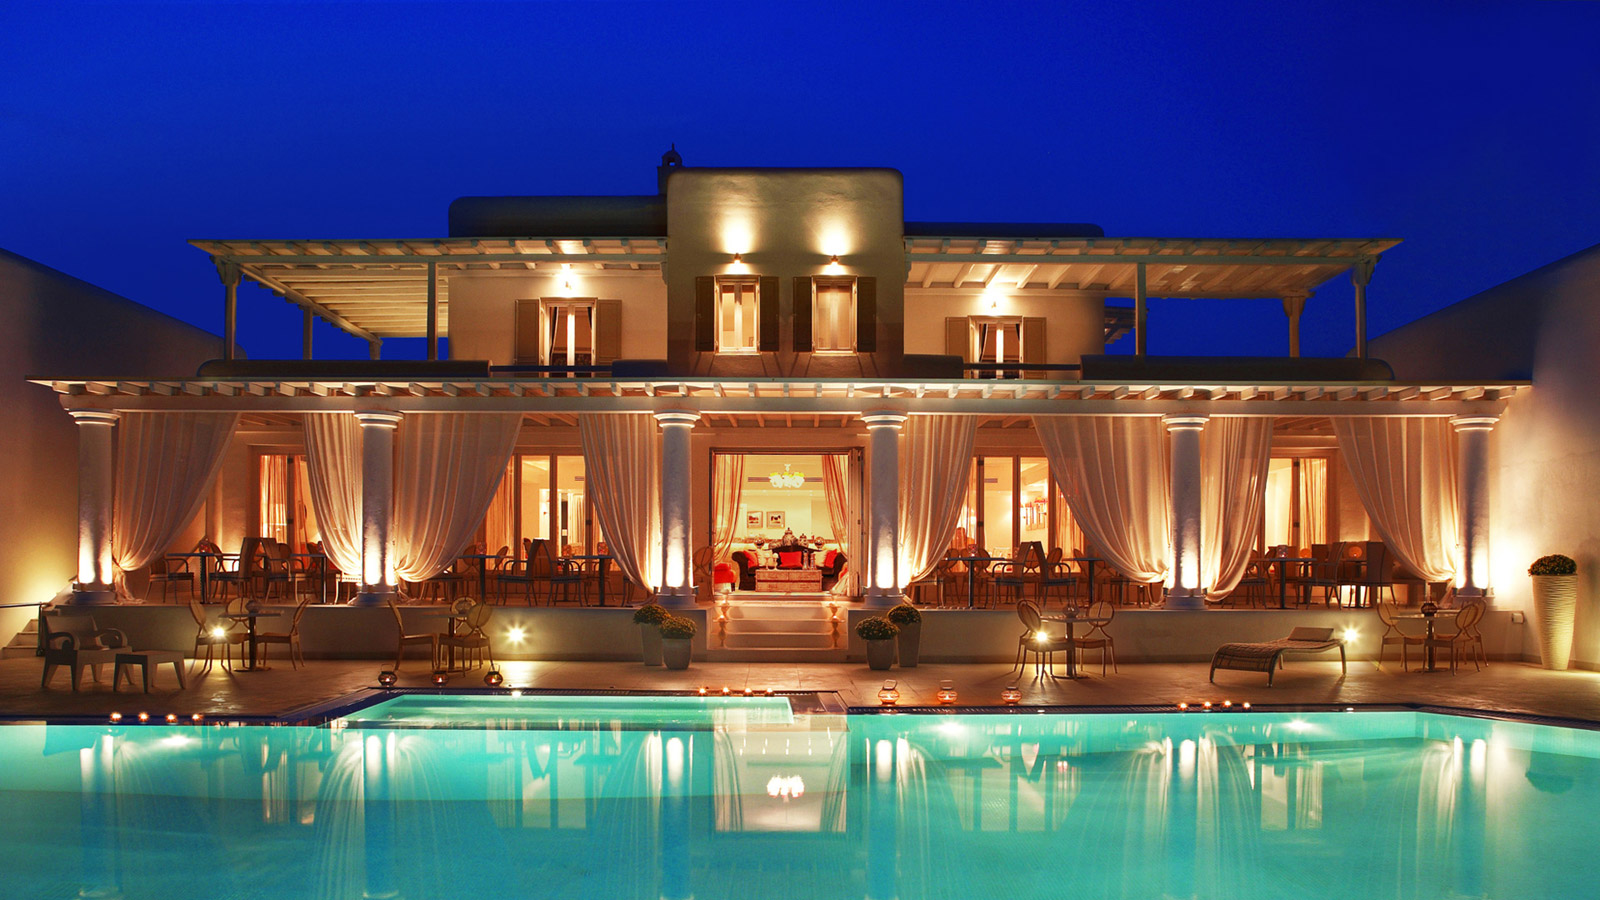 india luxury meditation course in elegant hotels For5 Star Luxury Hotels